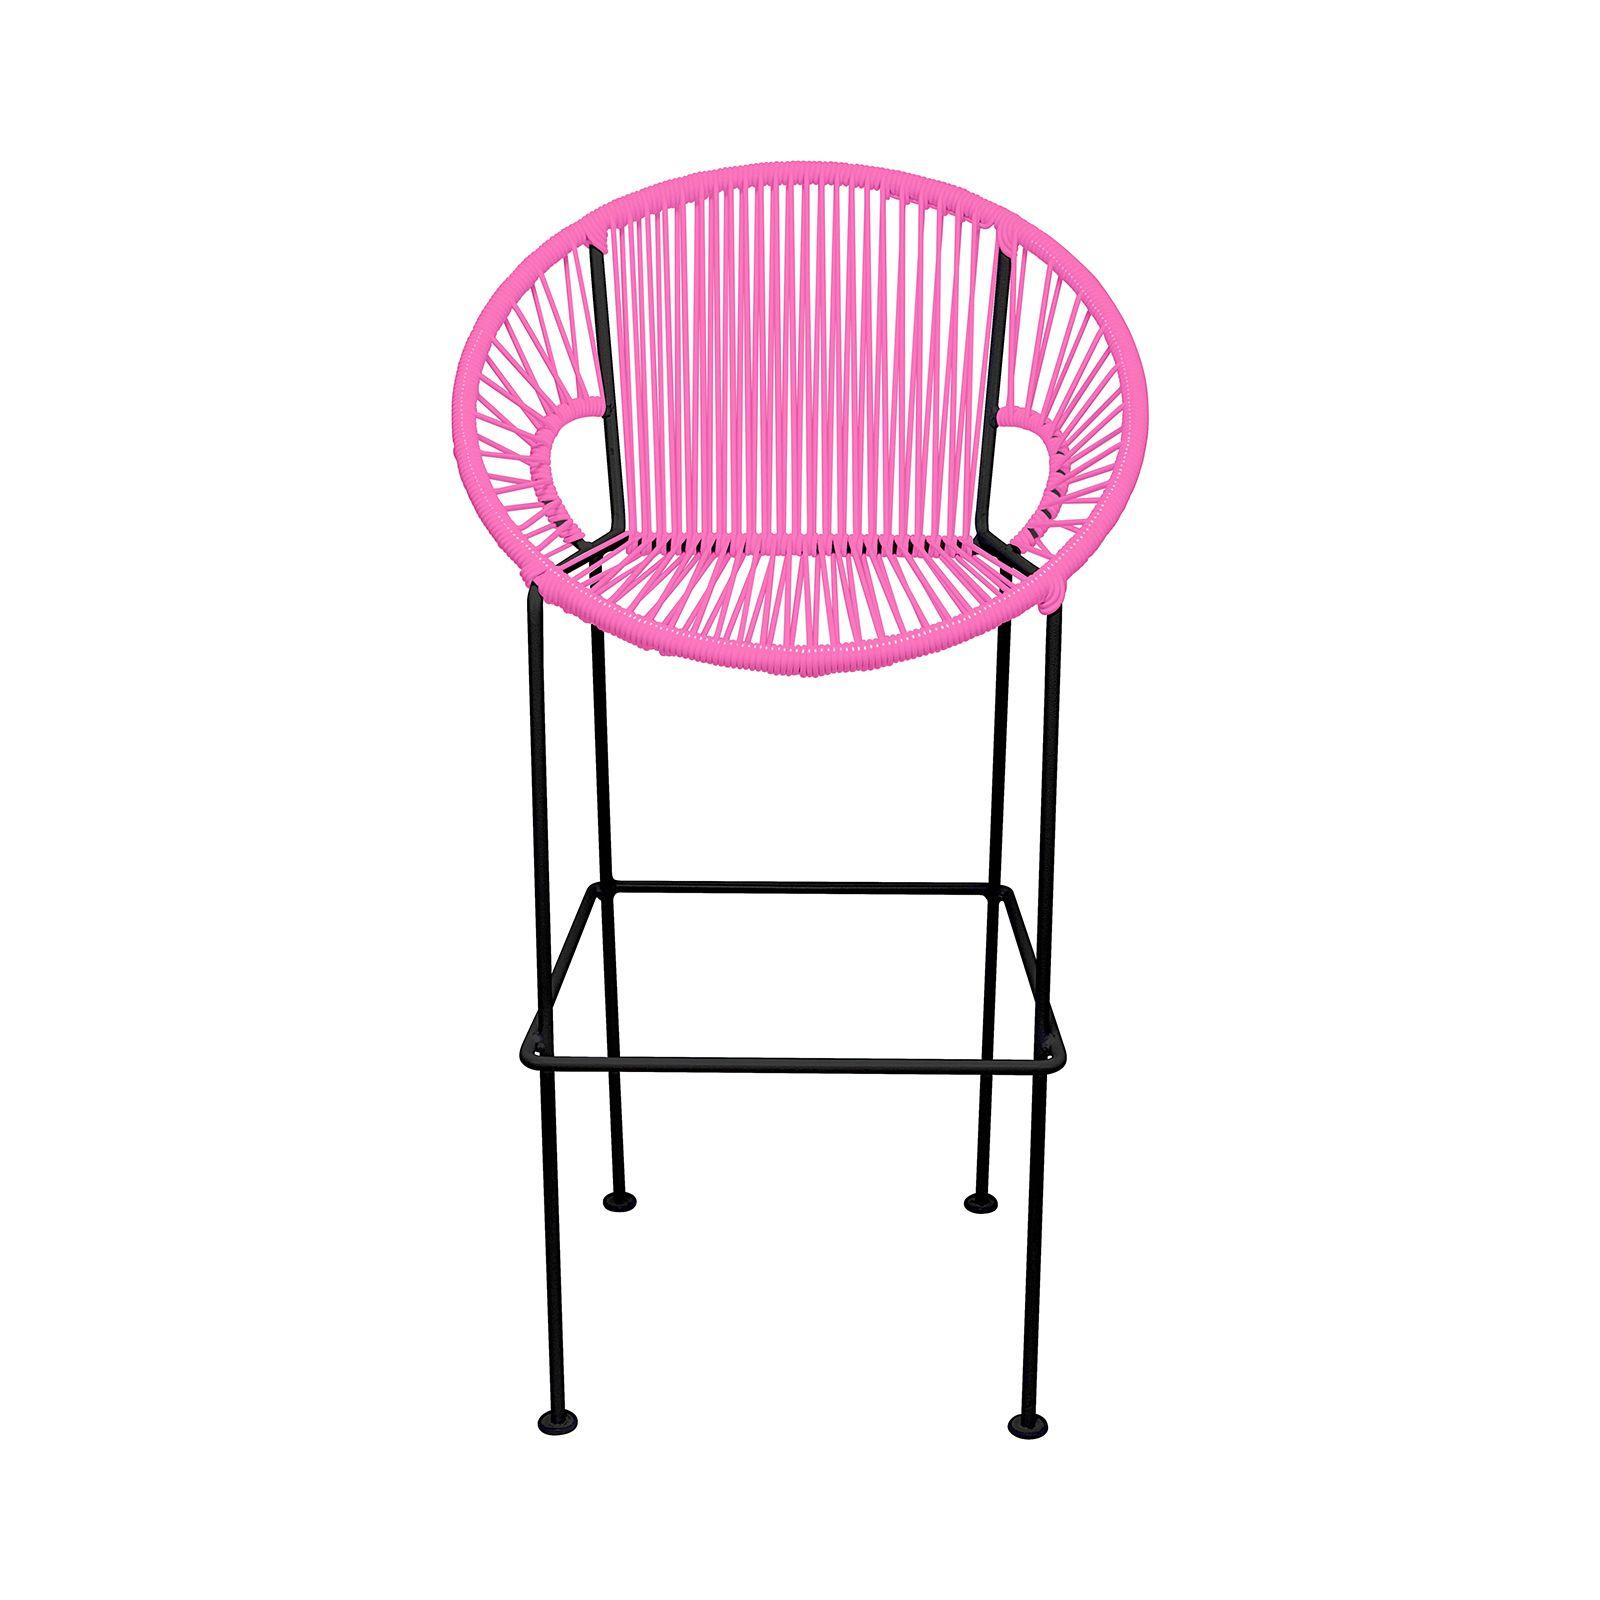 Pleasing Indoor Outdoor Seating With No Strings Attached With Unemploymentrelief Wooden Chair Designs For Living Room Unemploymentrelieforg